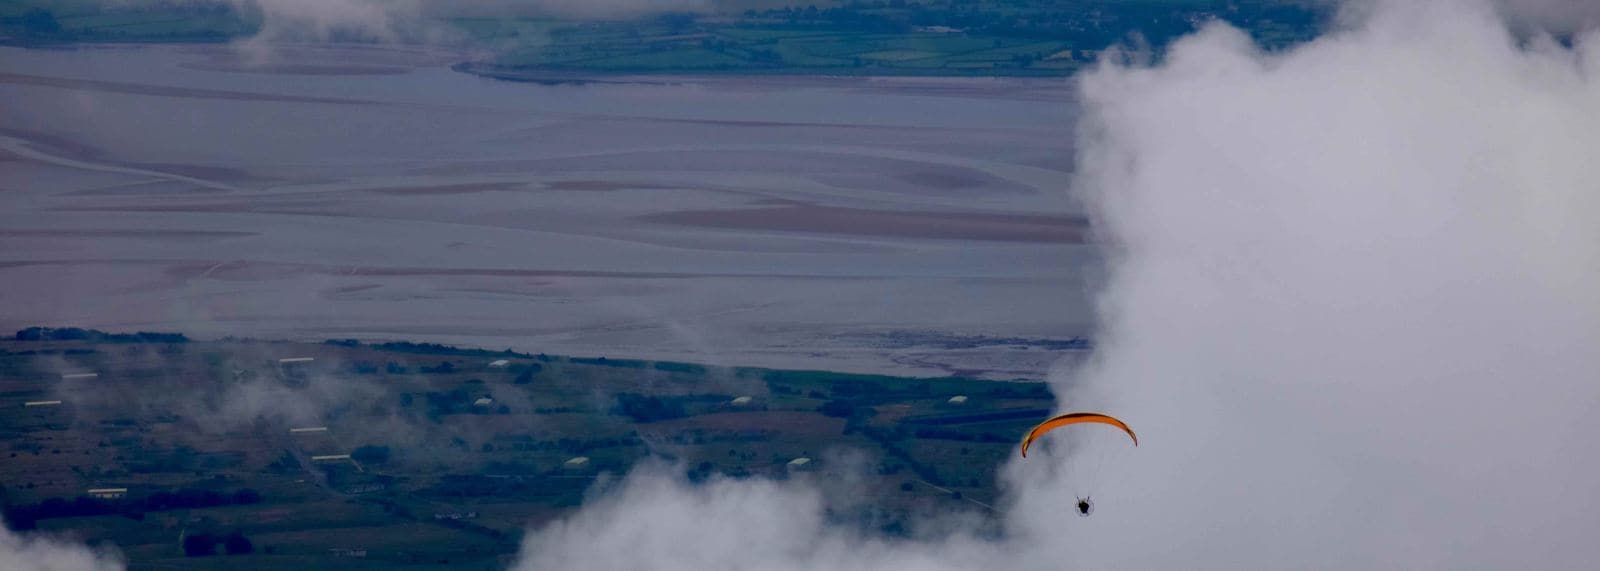 Paramotoring across the Solway Firth into England